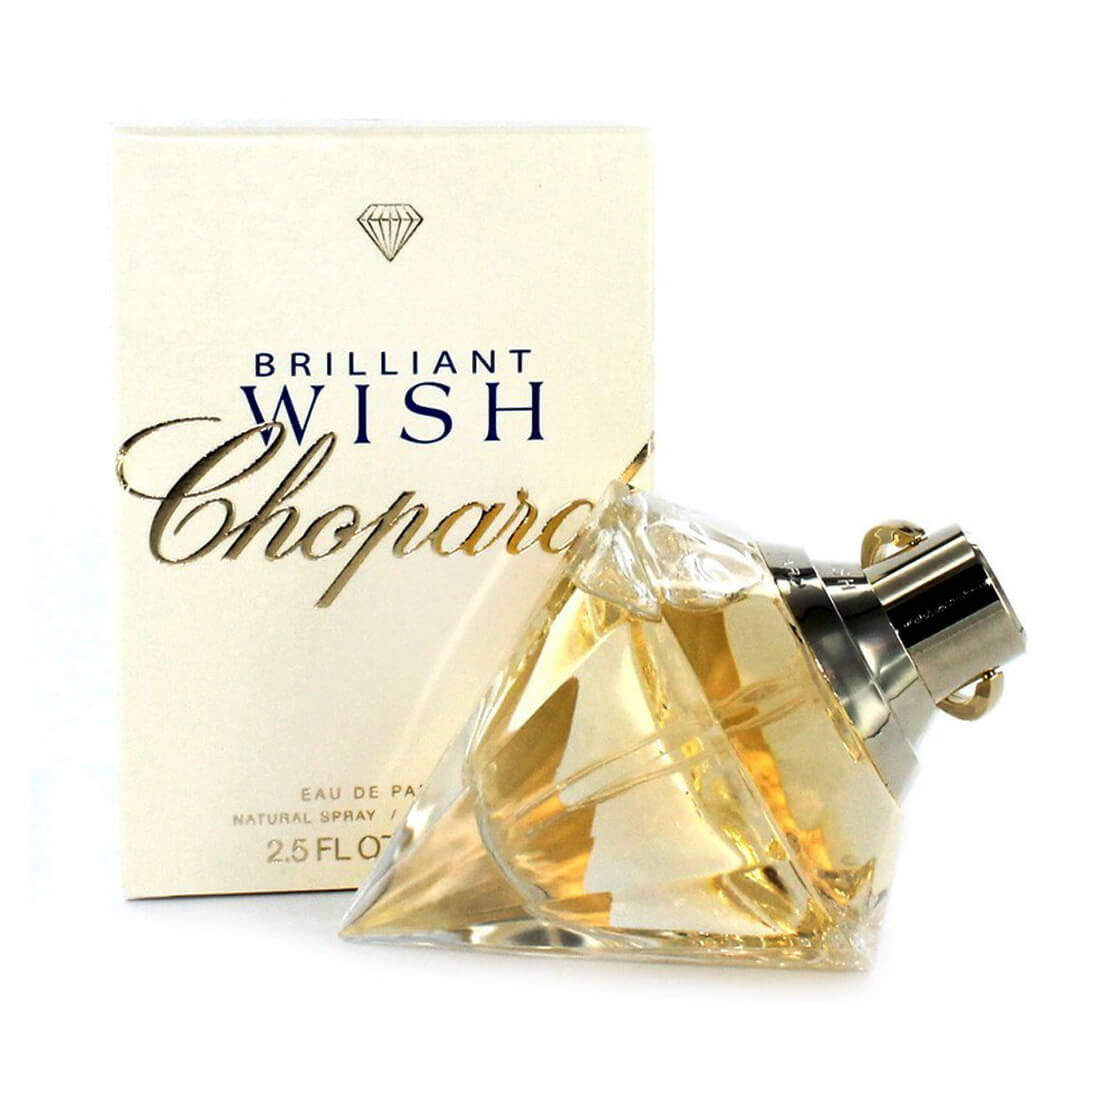 Chopard Brilliant Wish Eau De Perfume For Women - 75ml